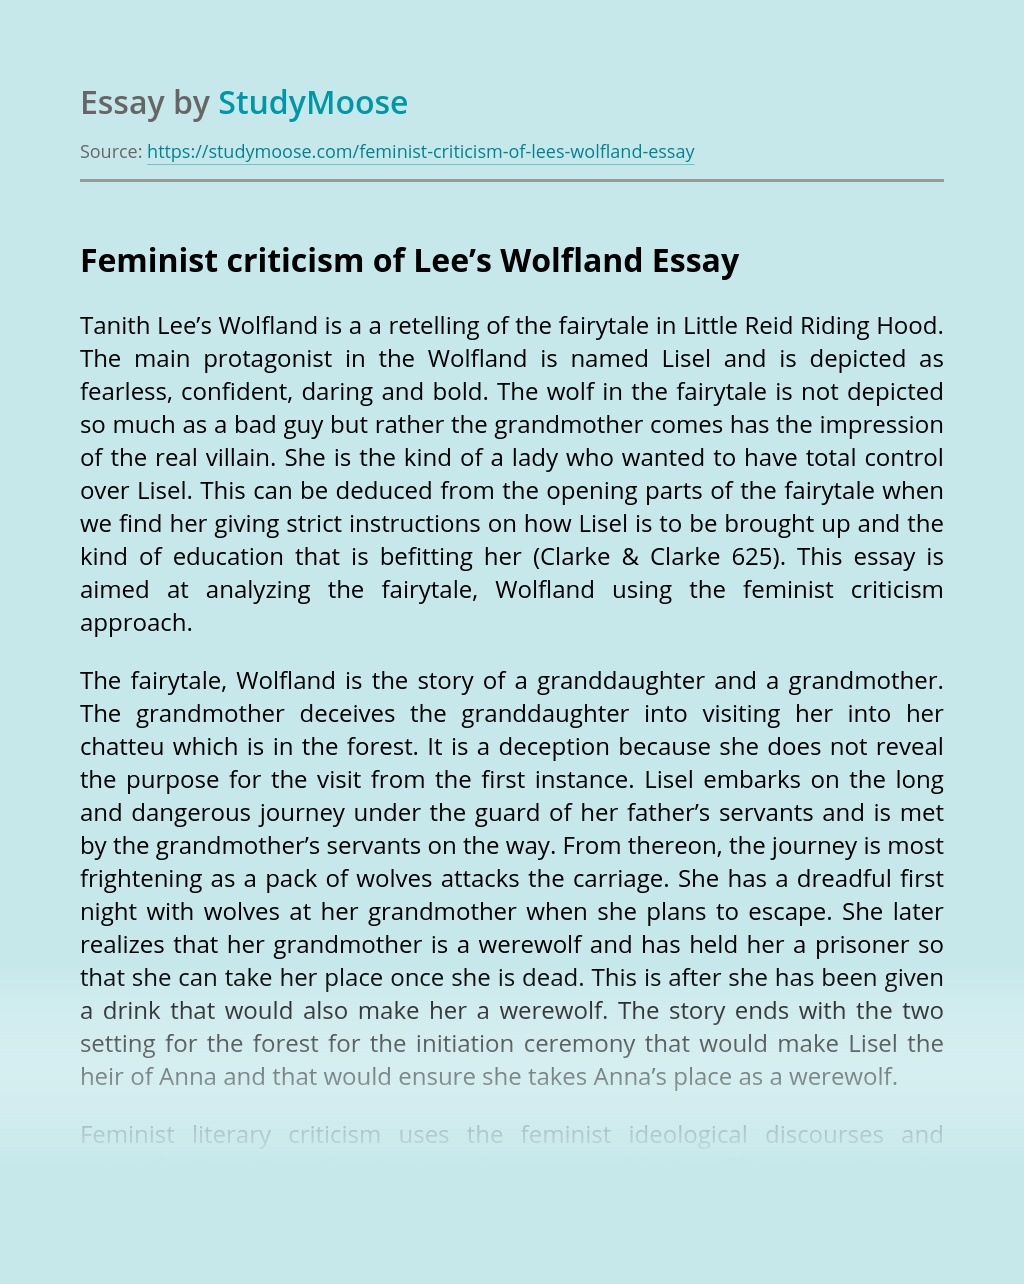 Feminist criticism of Lee's Wolfland